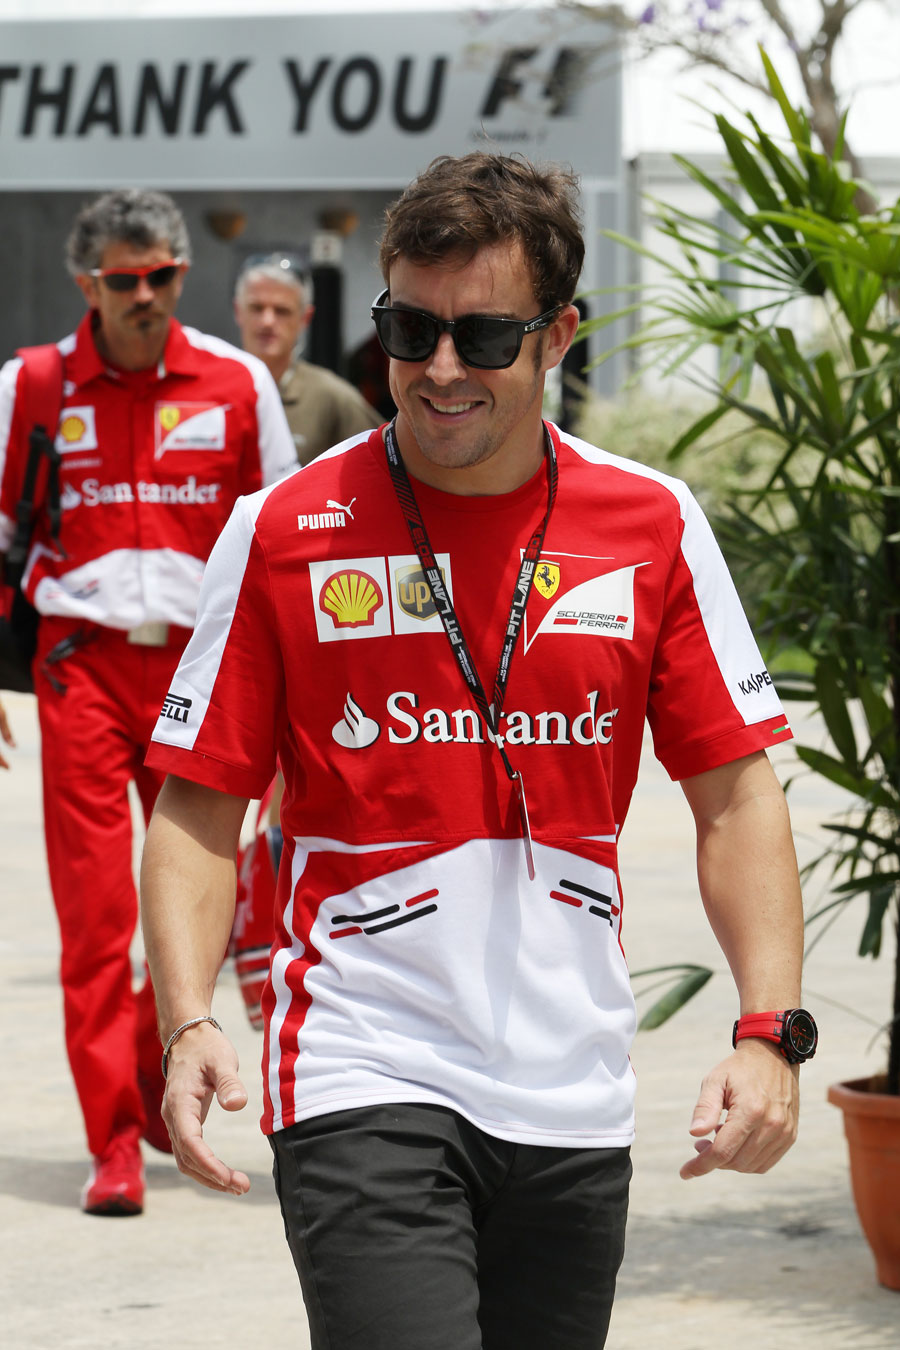 Fernando Alonso is all smiles in the Sepang paddock